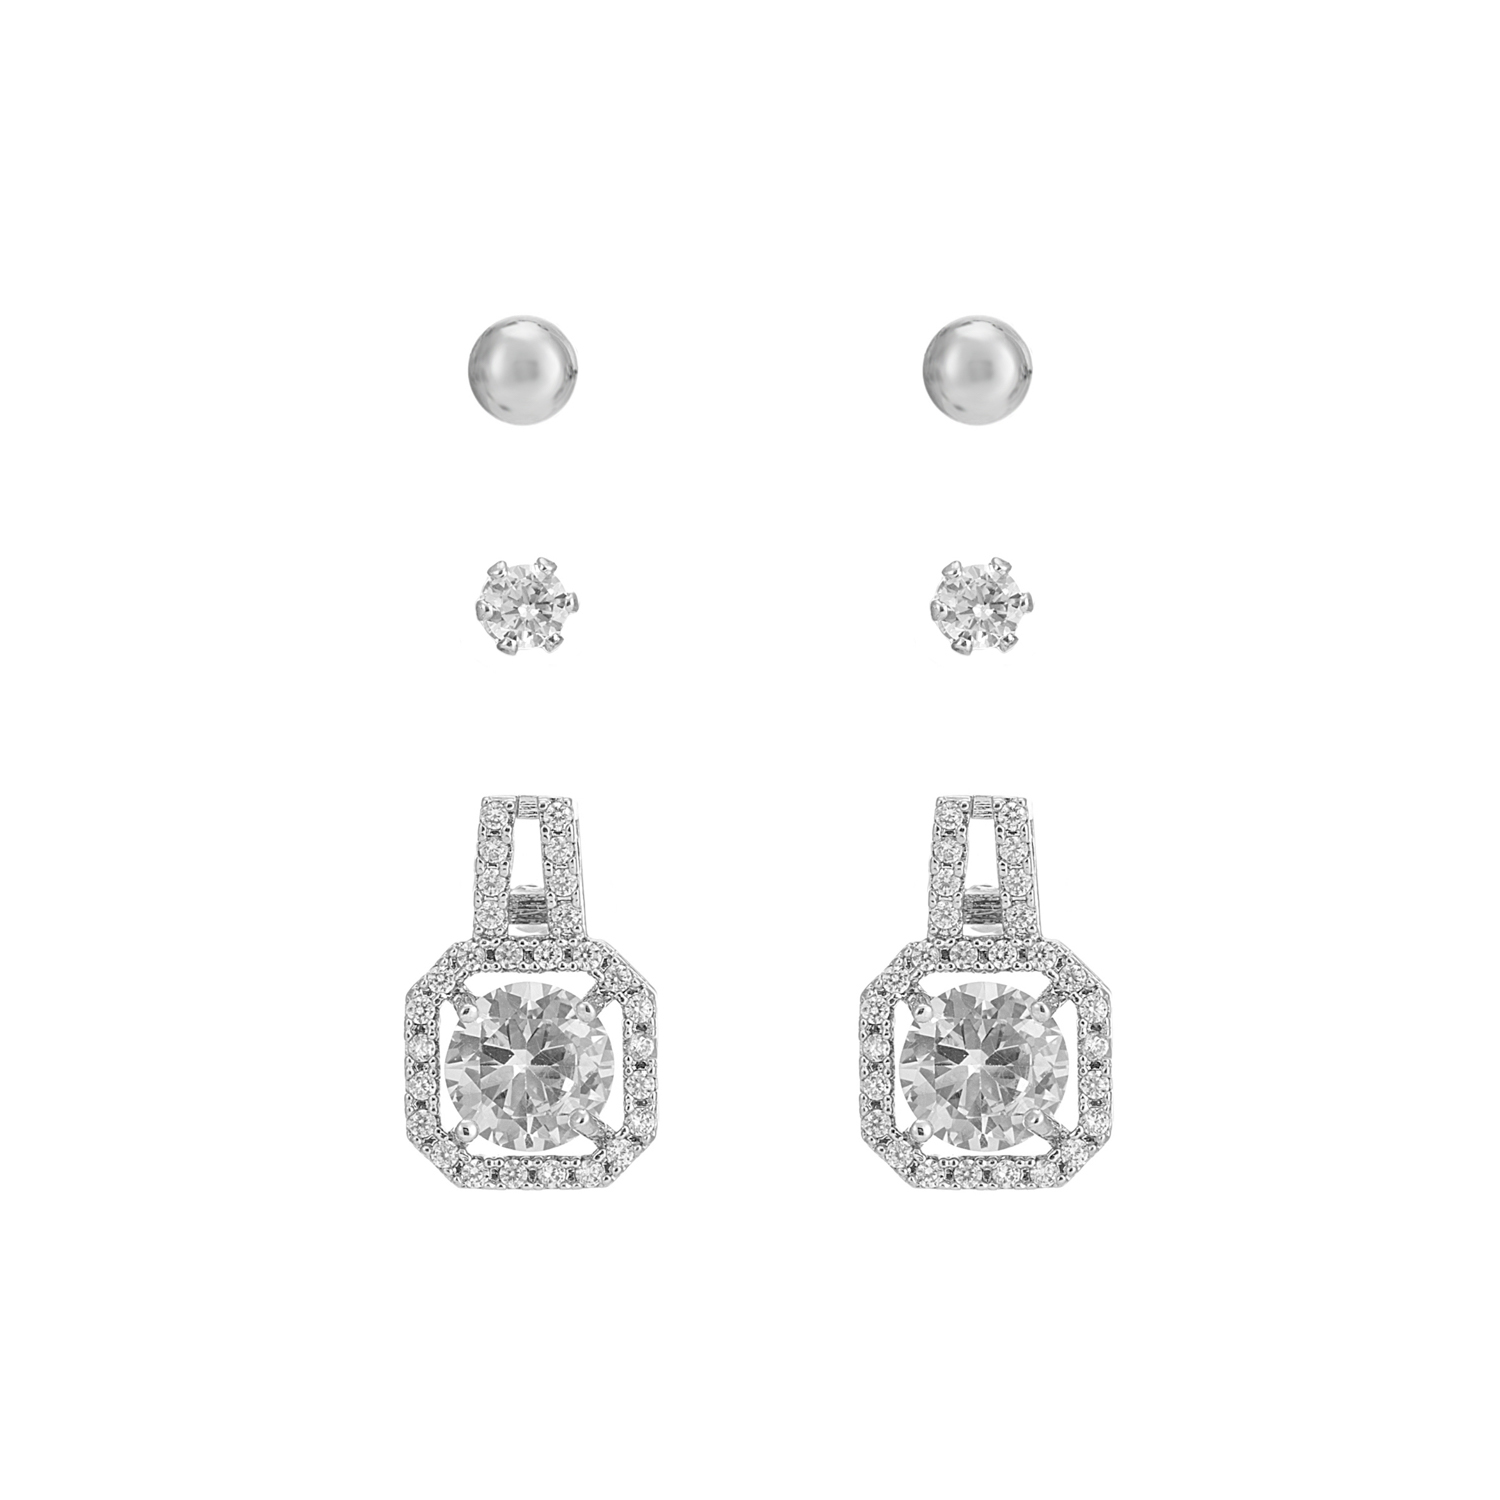 SILVER Signature Sparkle Earring Gift Set